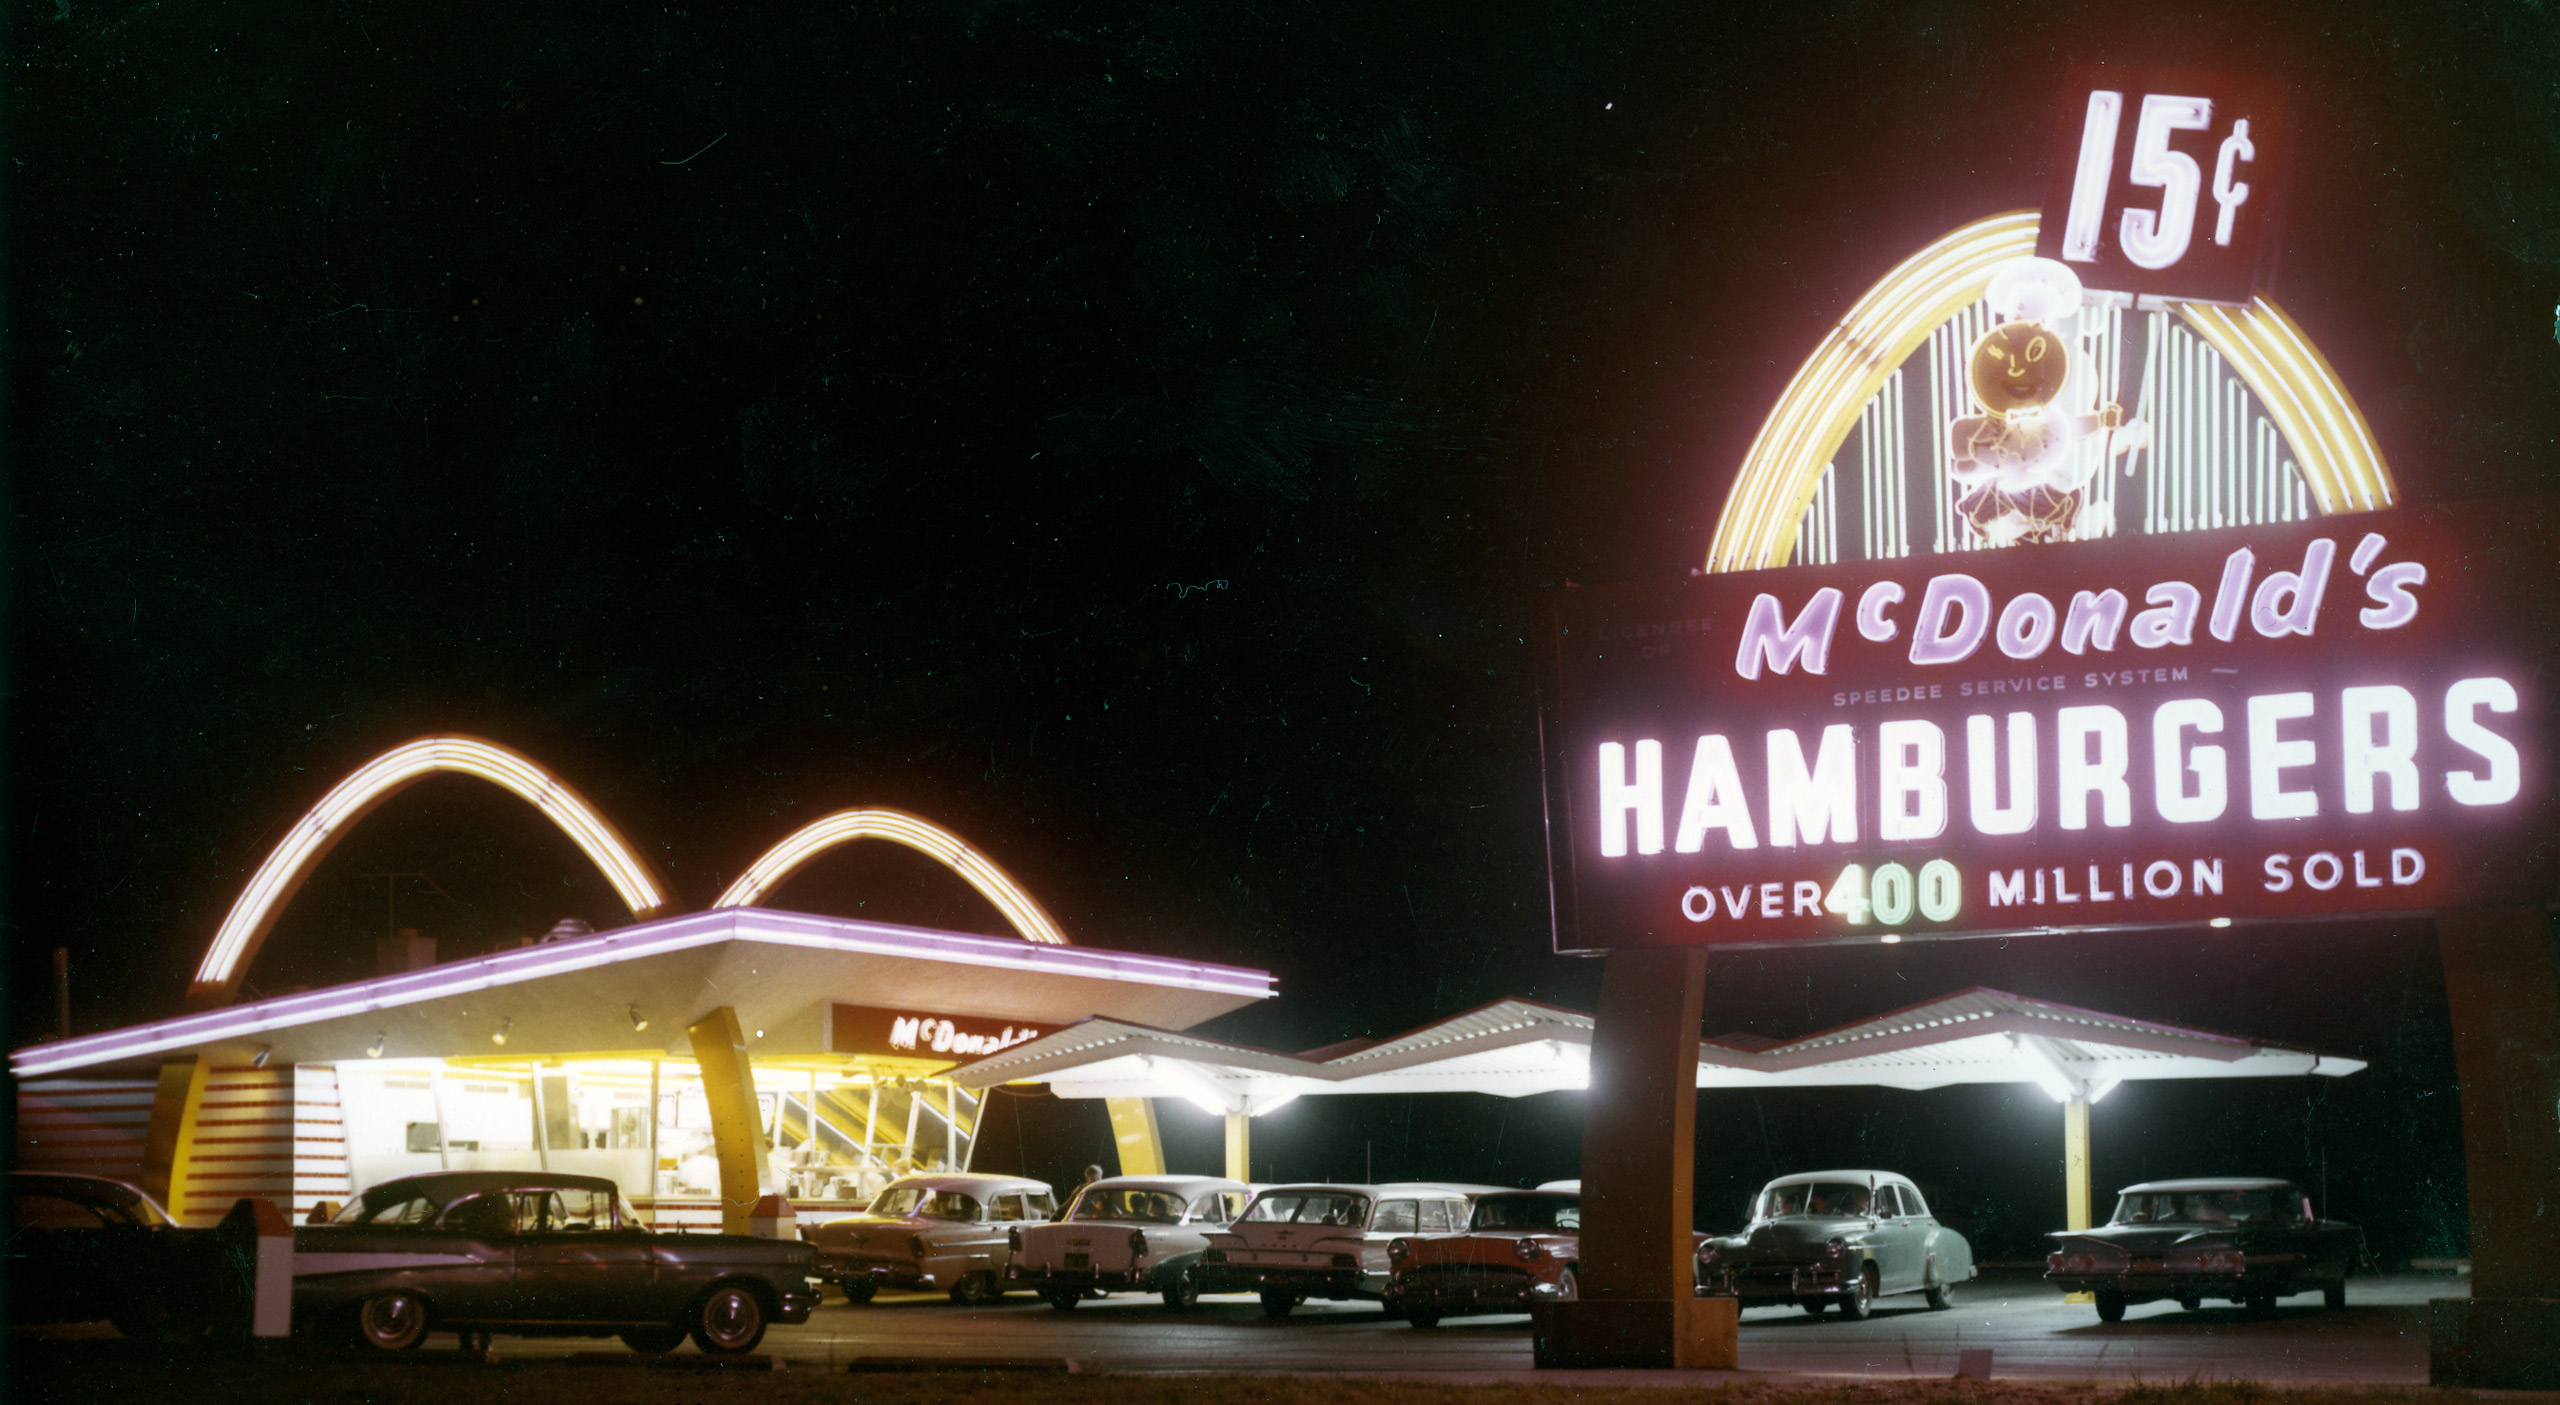 McDonald's reaches 400 Million served, in 1960.